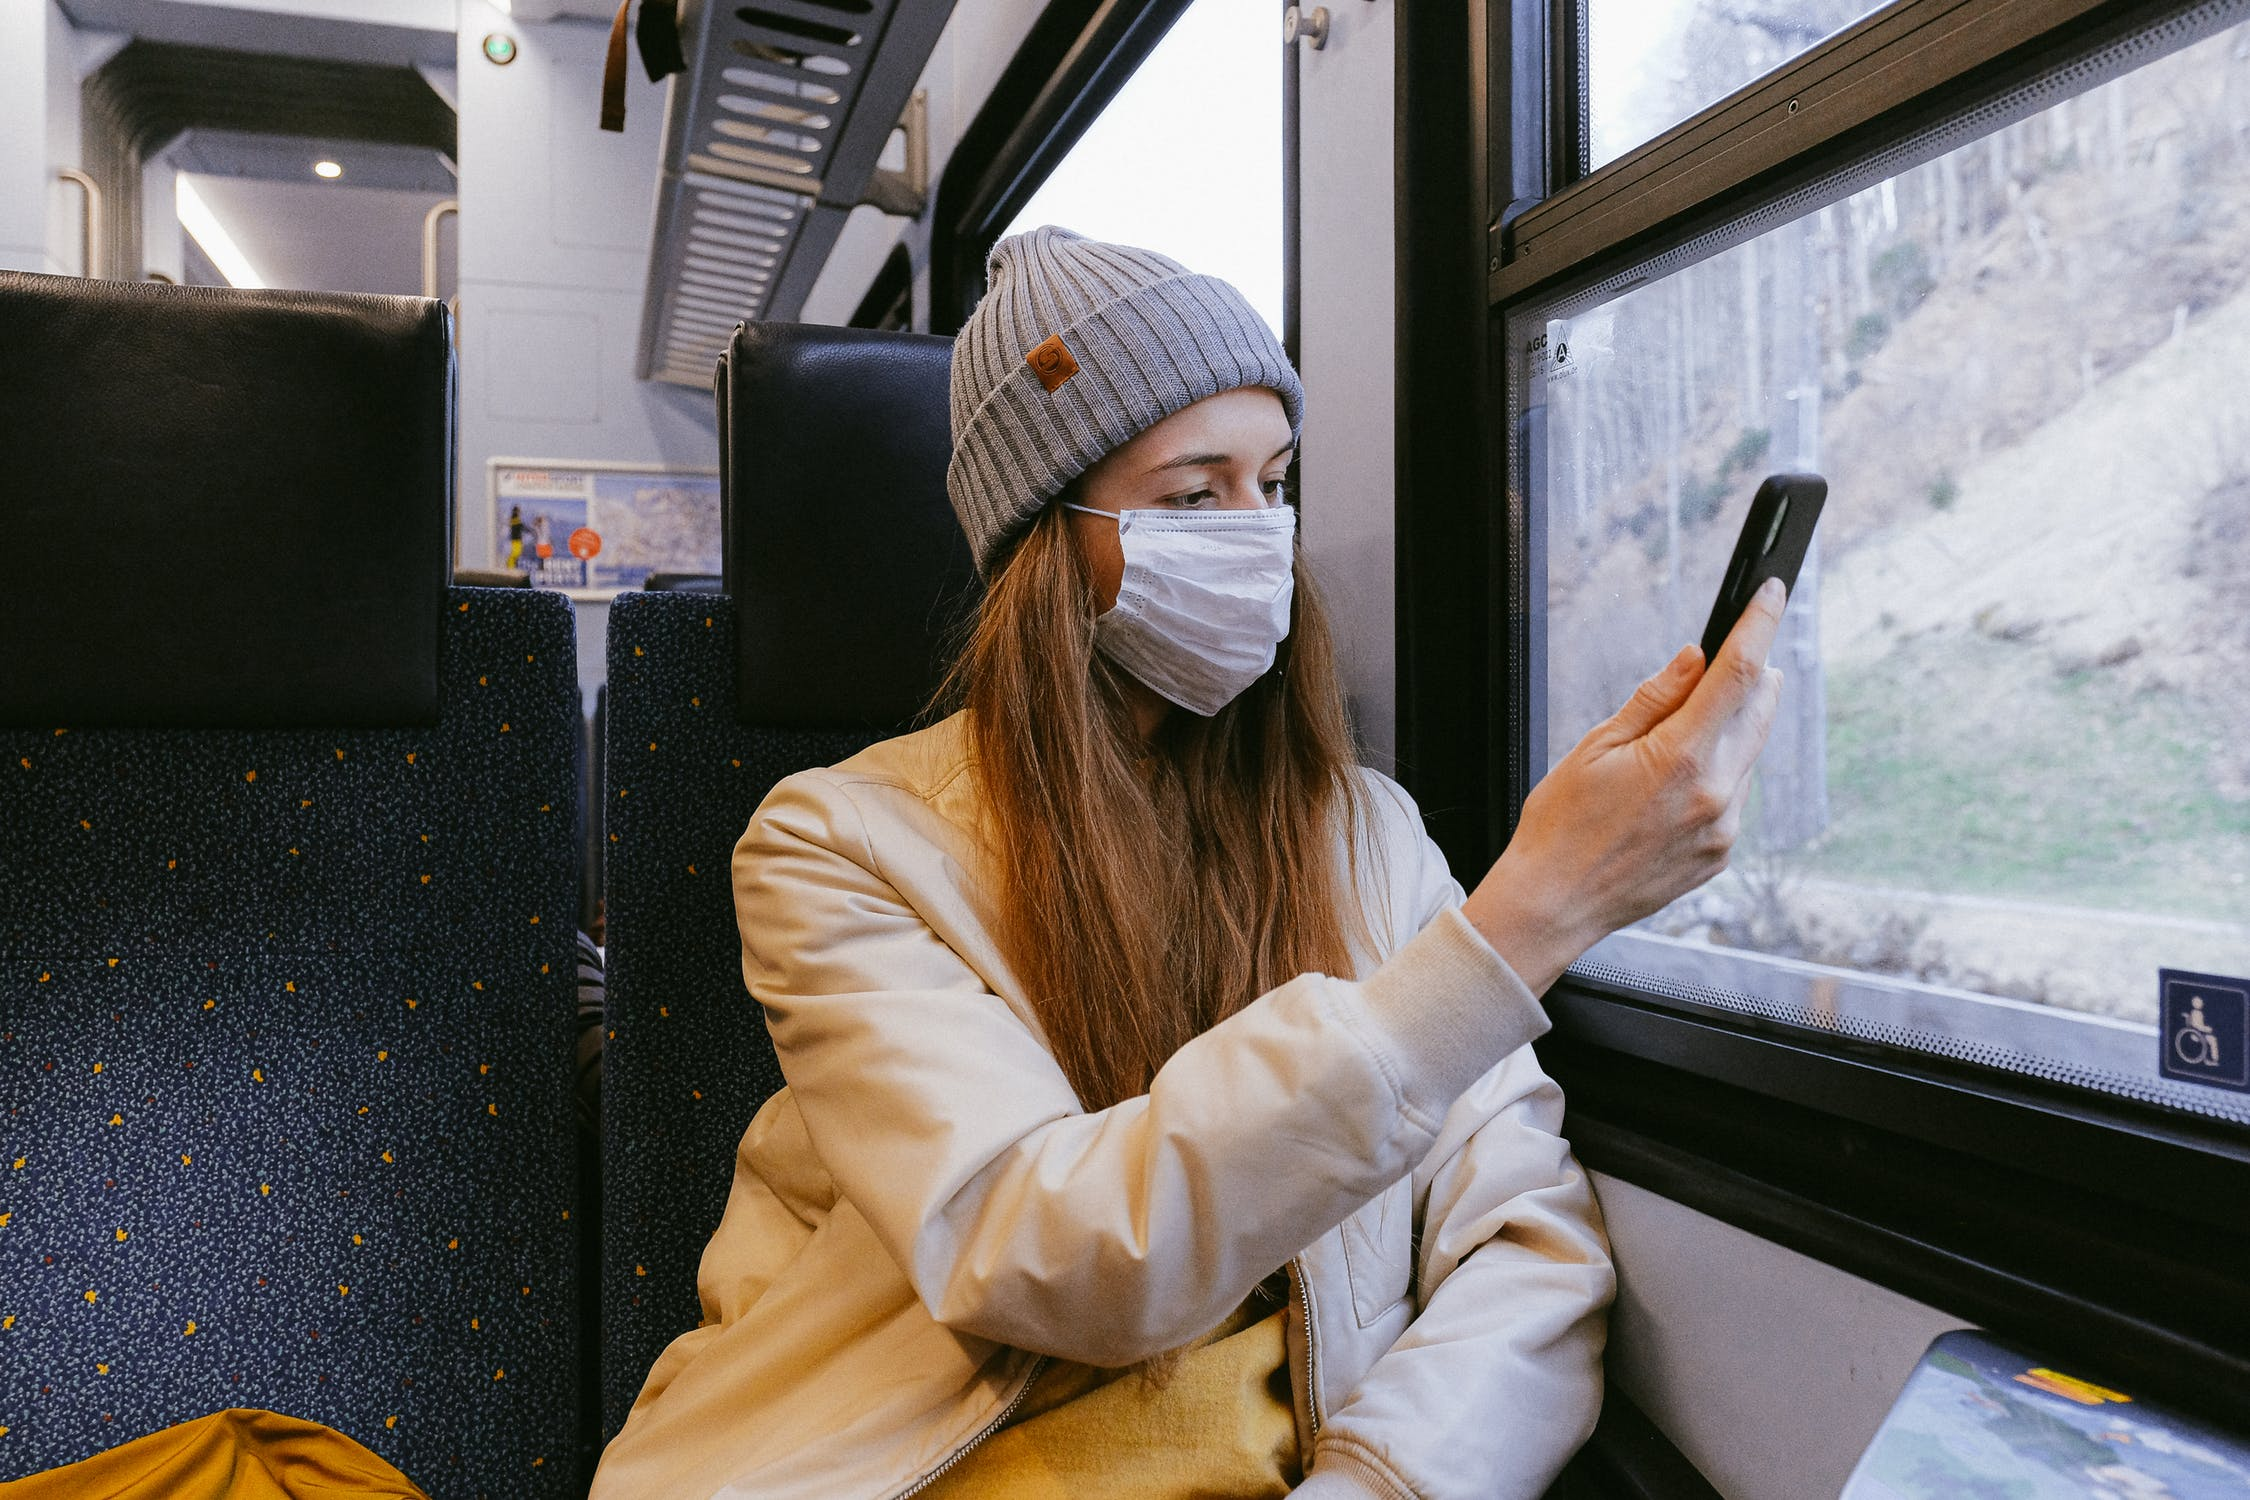 A woman wearing a jacket, beanie, and surgical face mask on a train pointing her phone toward the window.